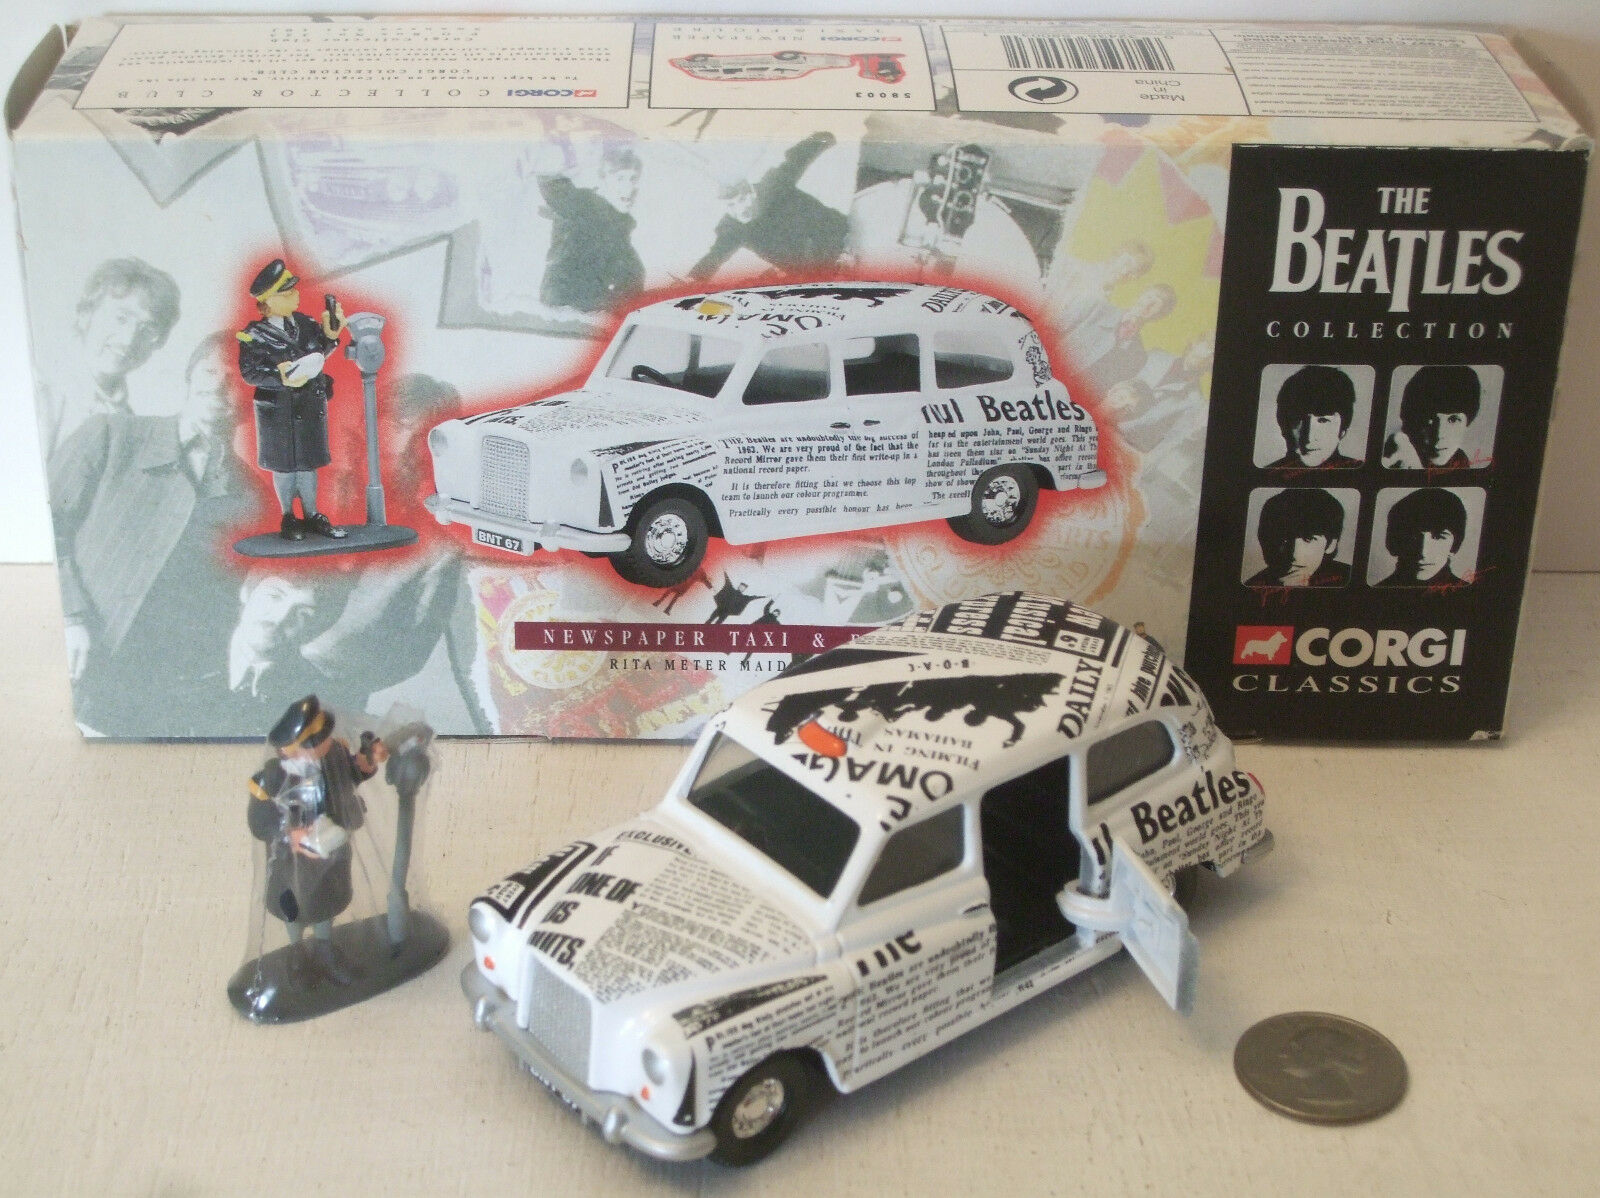 Corgi Beatles Newspaper Taxi & Rita Meter Maid & Meter NEW IN BOX (see photo)